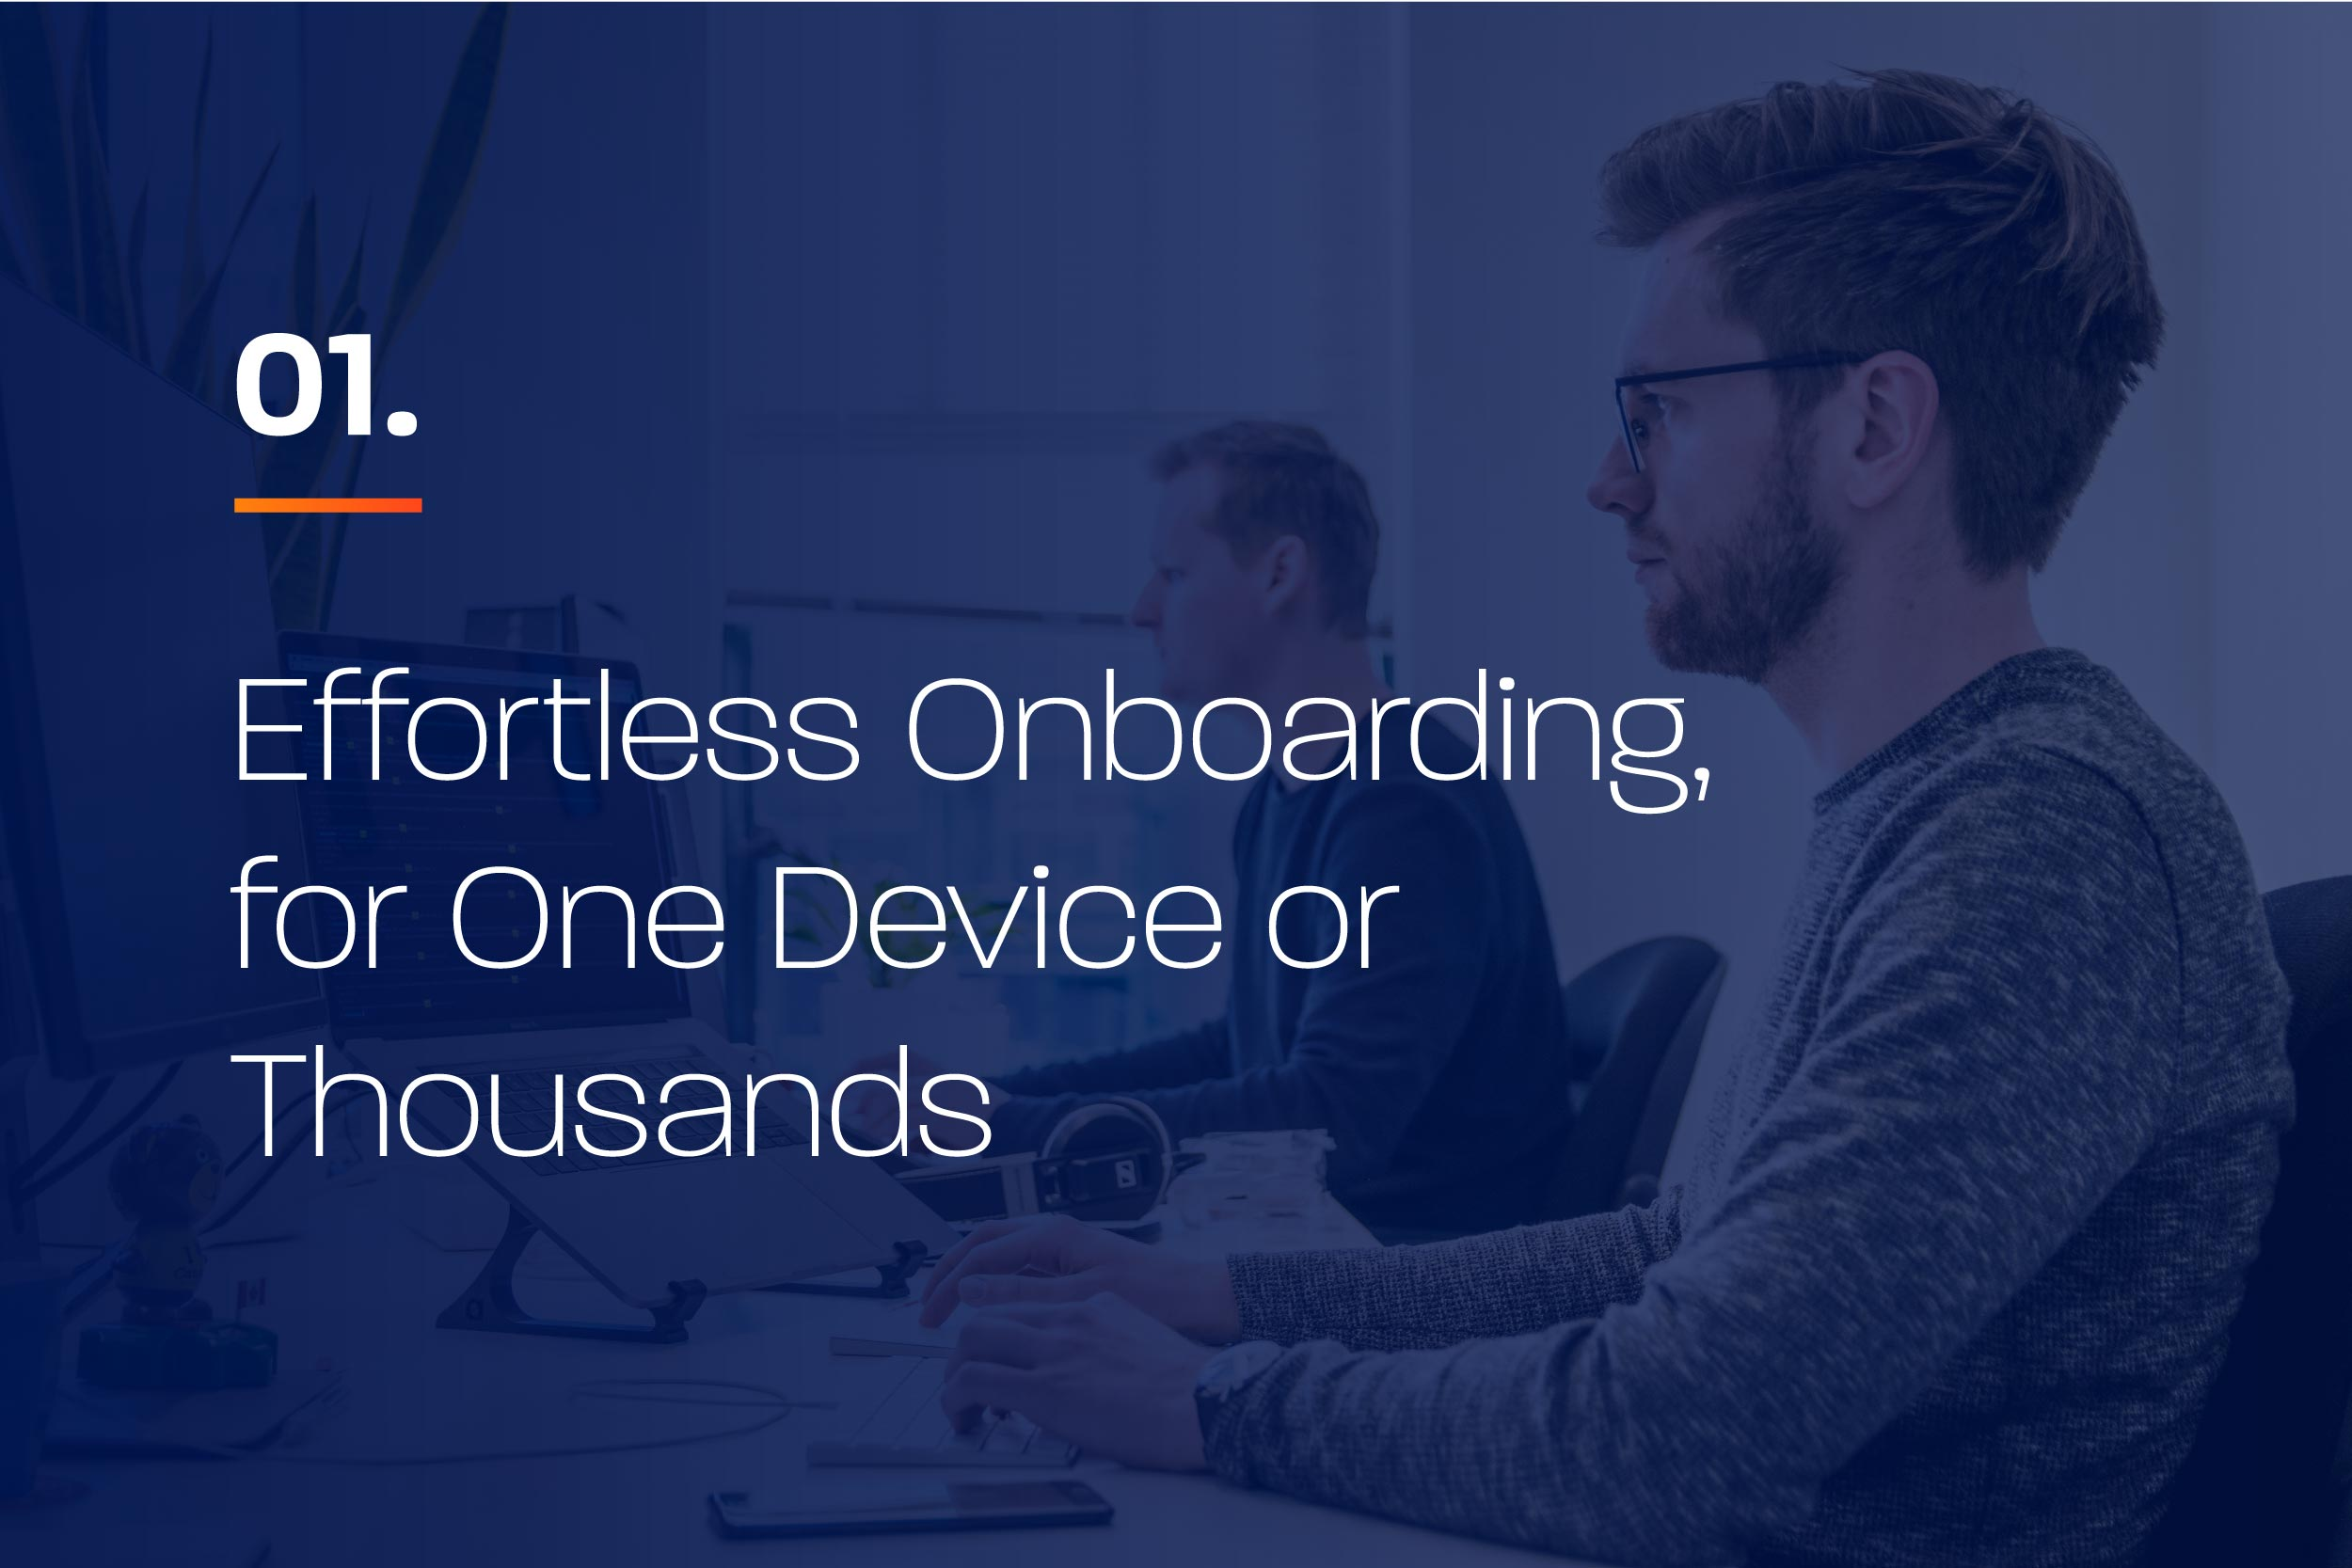 Effortless Onboarding for One Device or Thousands